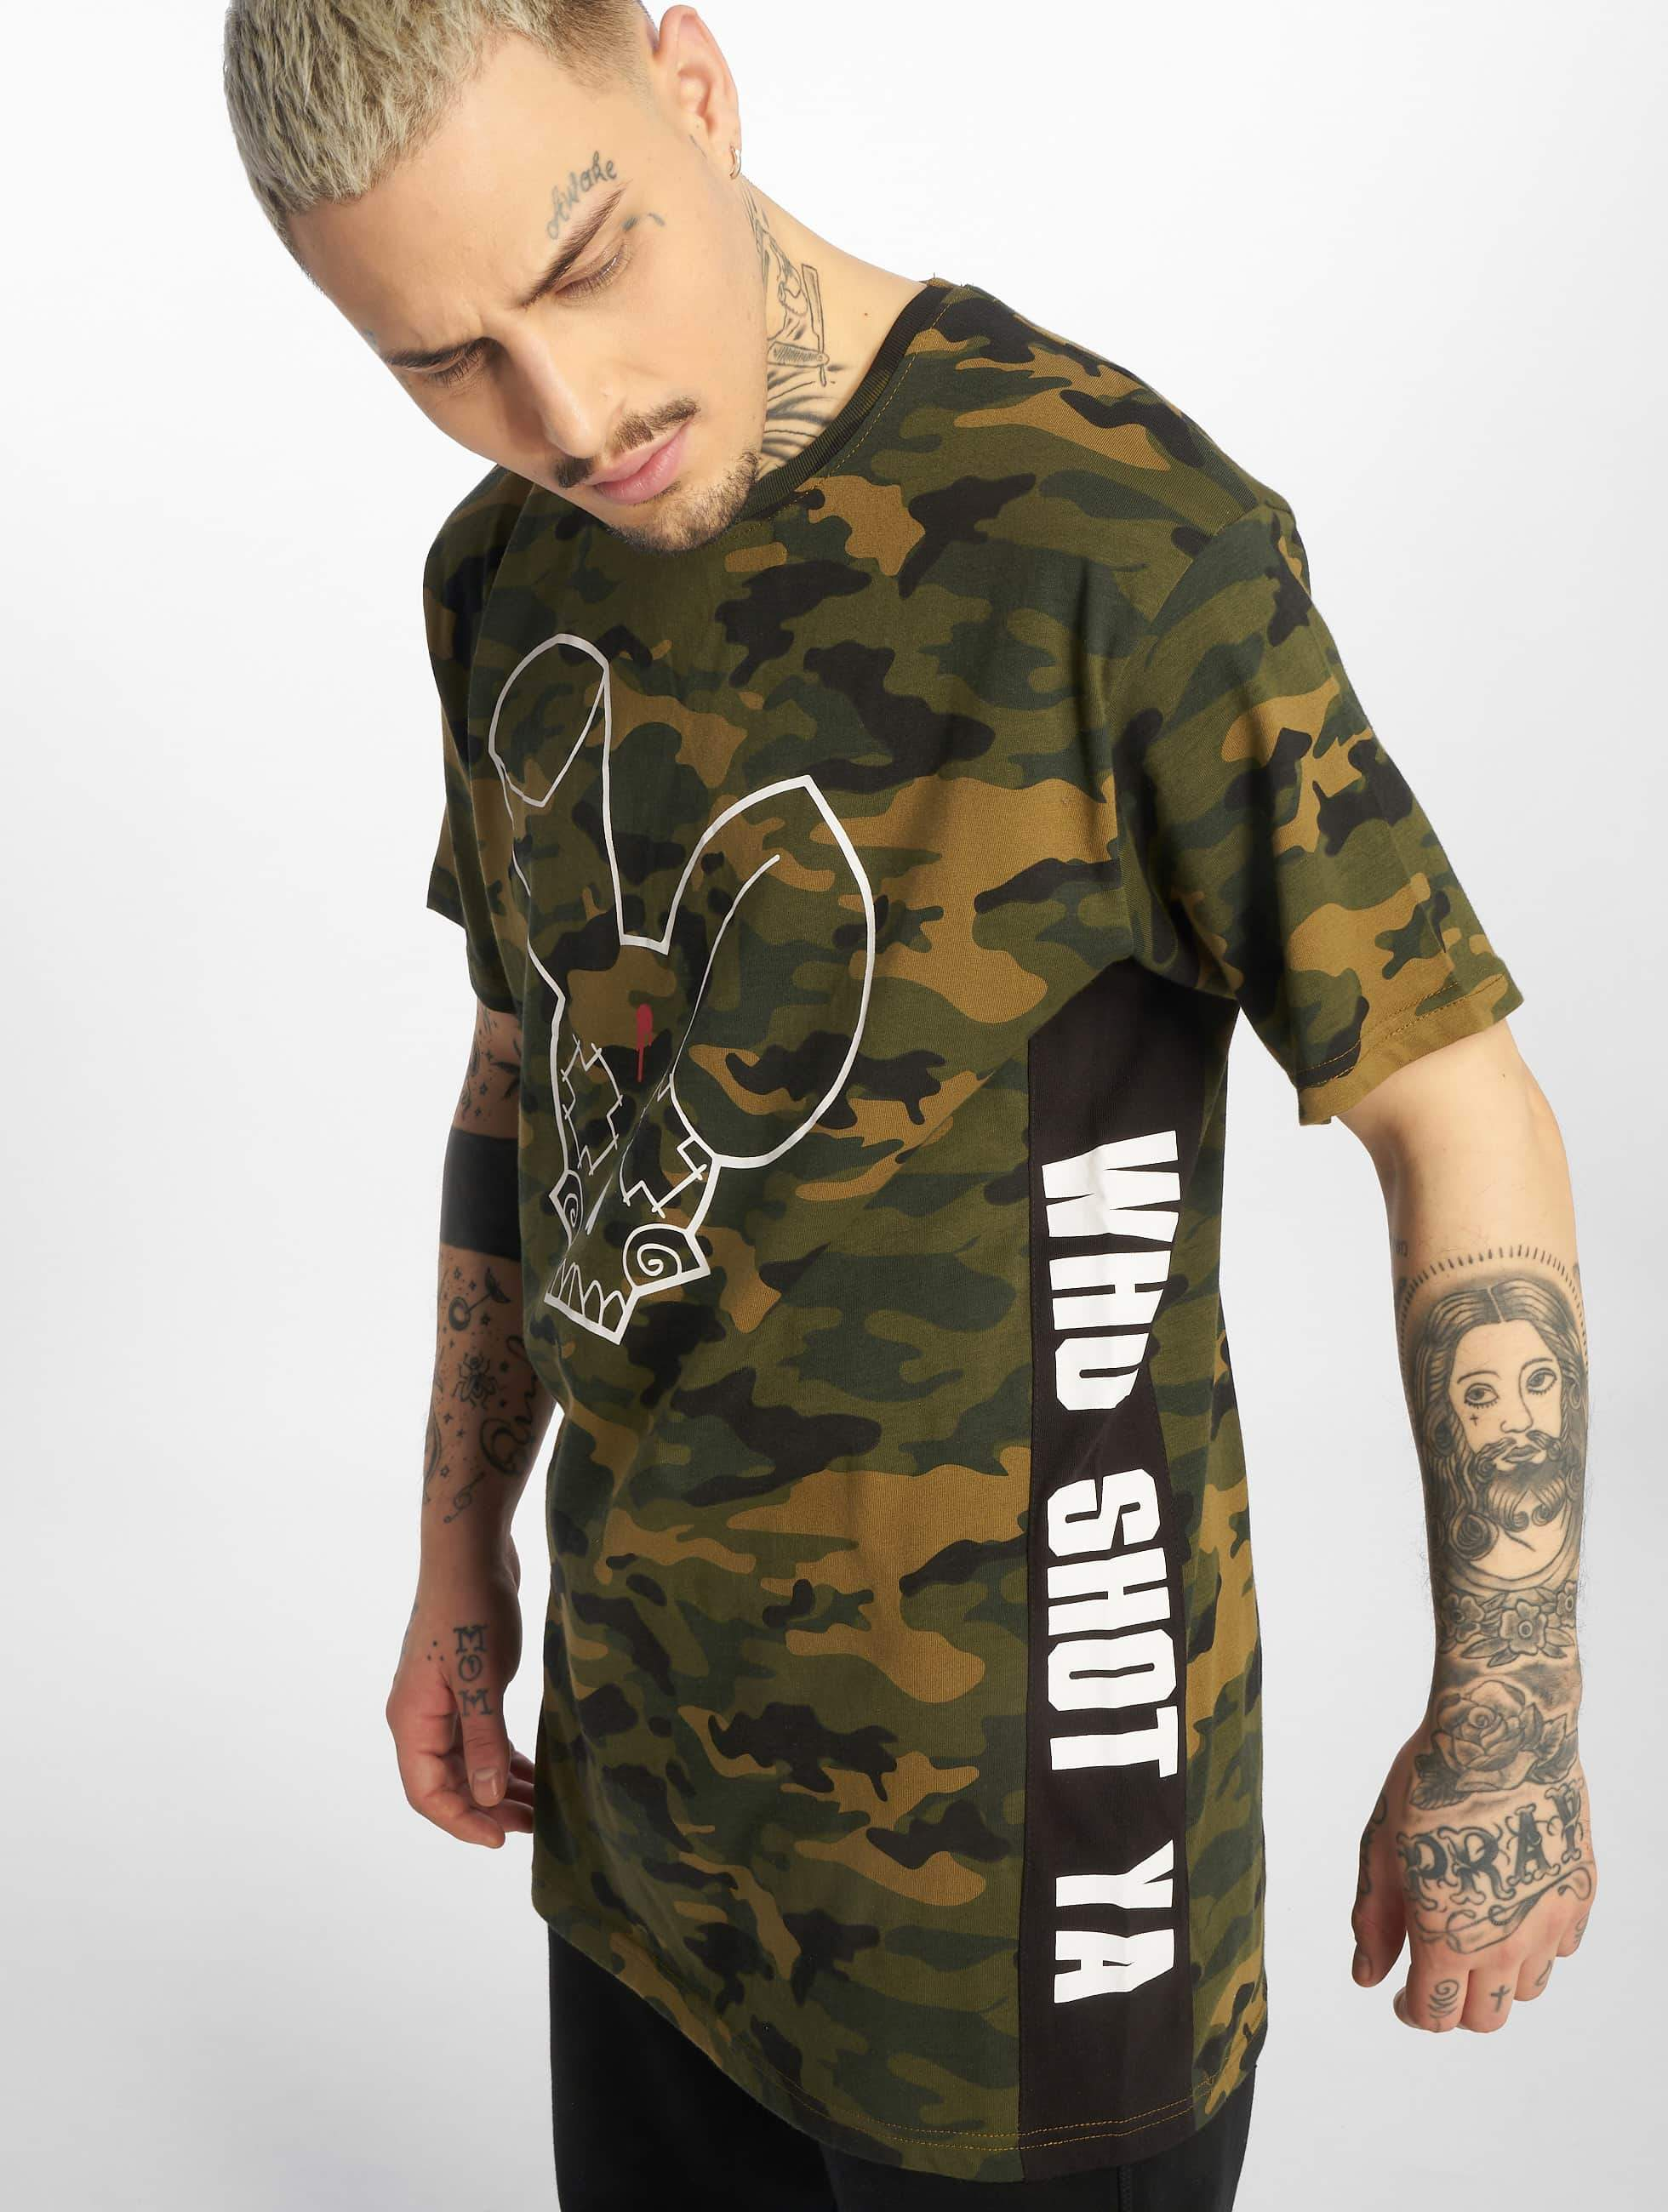 Who Shot Ya? / T-Shirt Camou Funk in camouflage XL